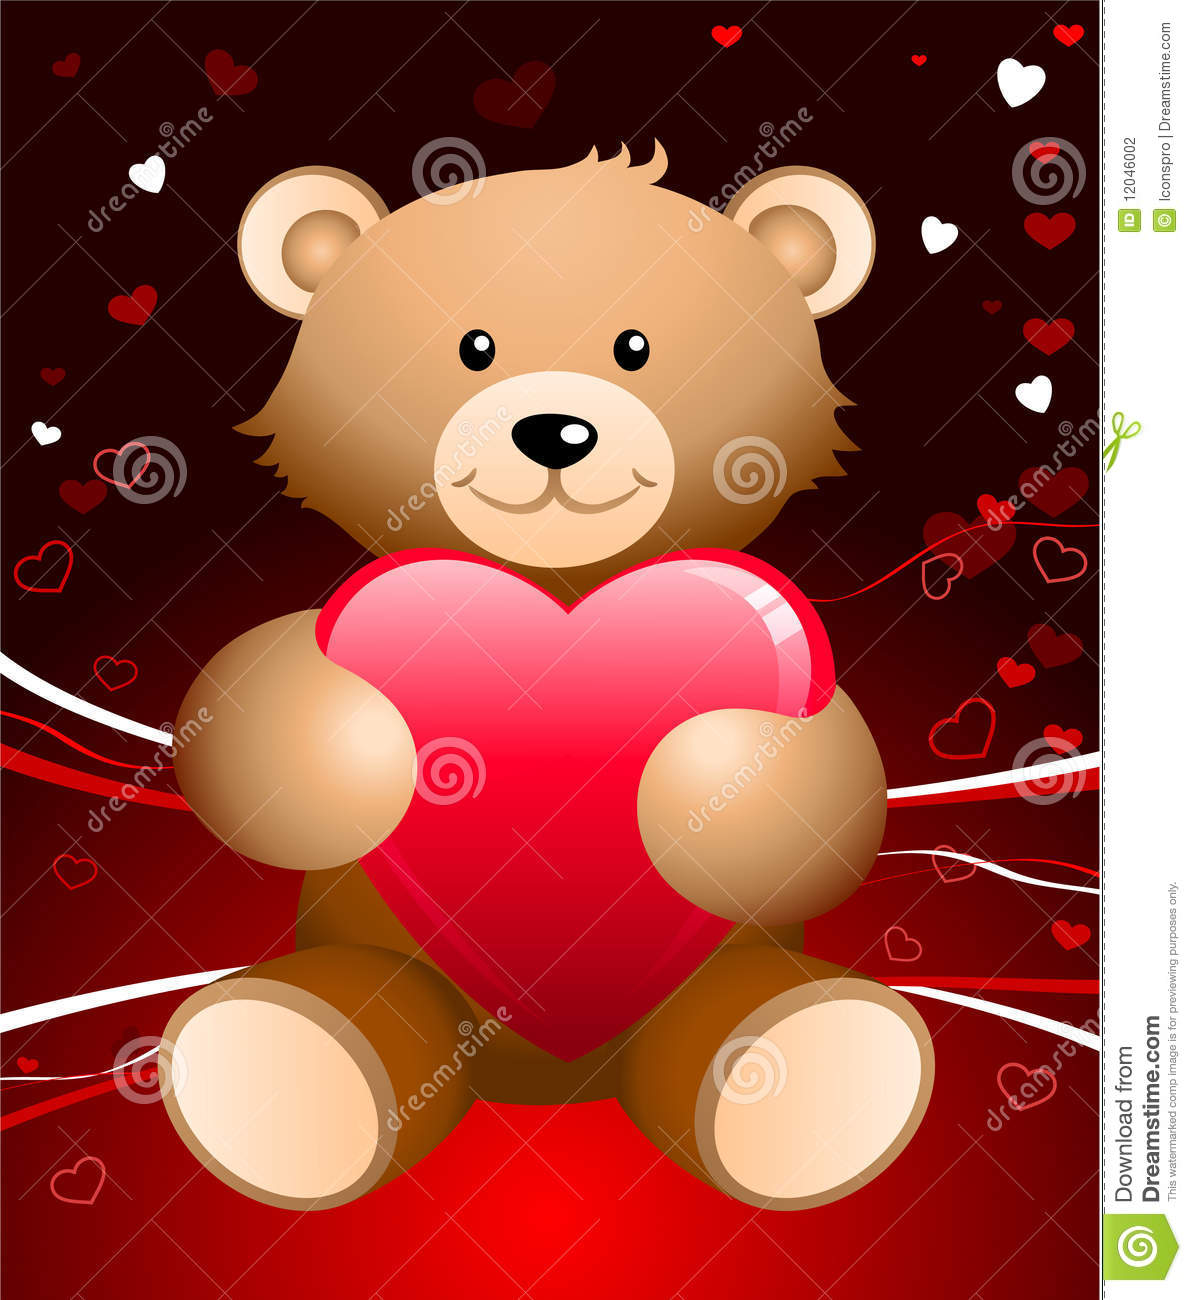 Teddy Bear Romantic Valentine S Day Background